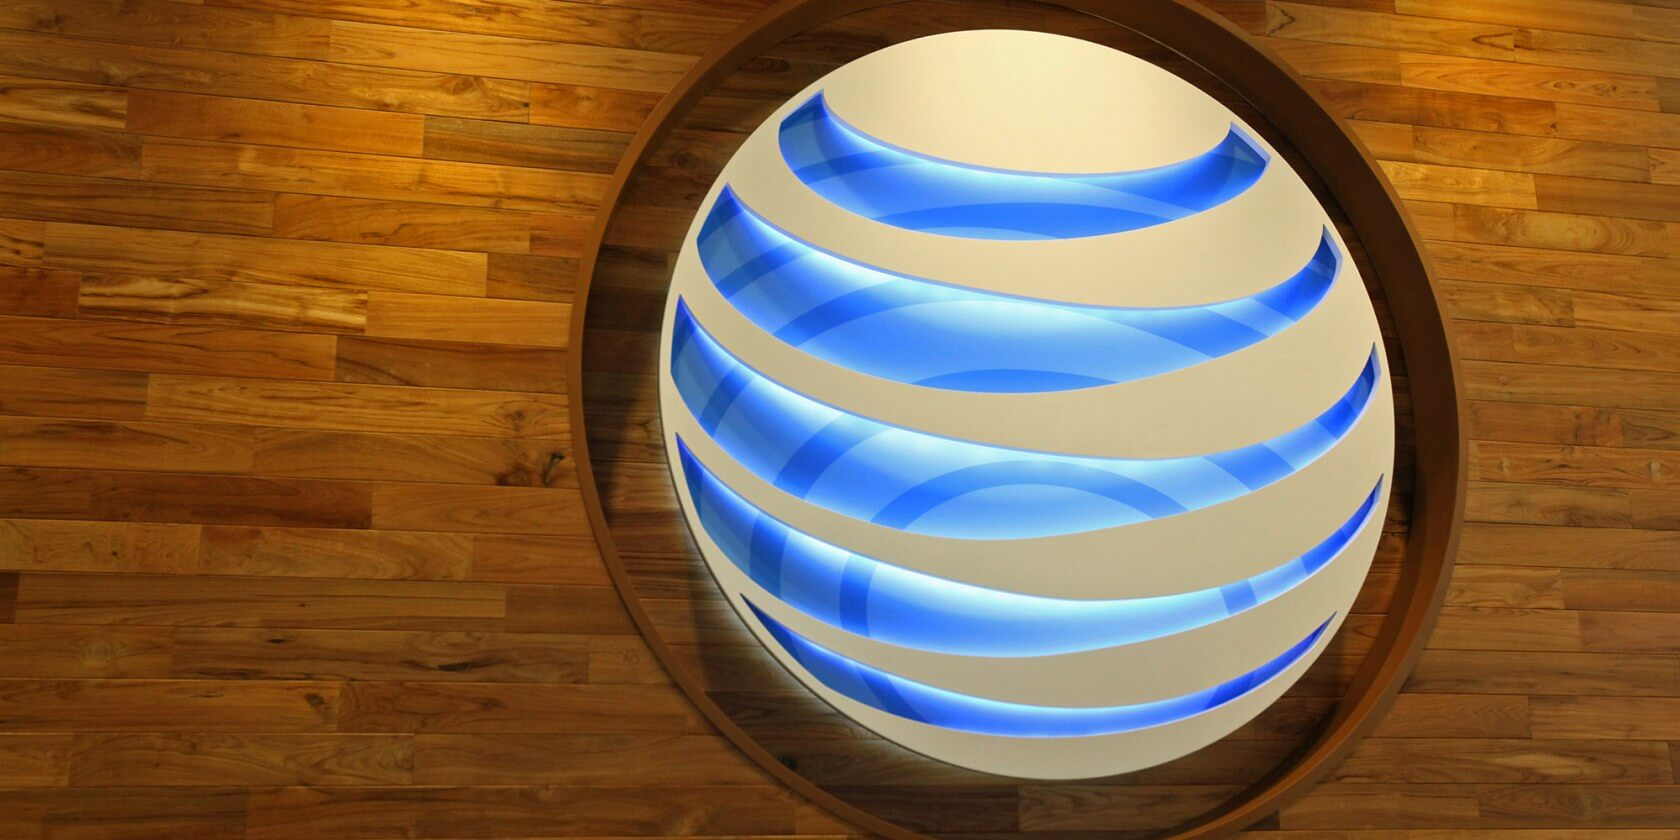 AT&T, T-Mobile, Sprint seek to make amends over location breach